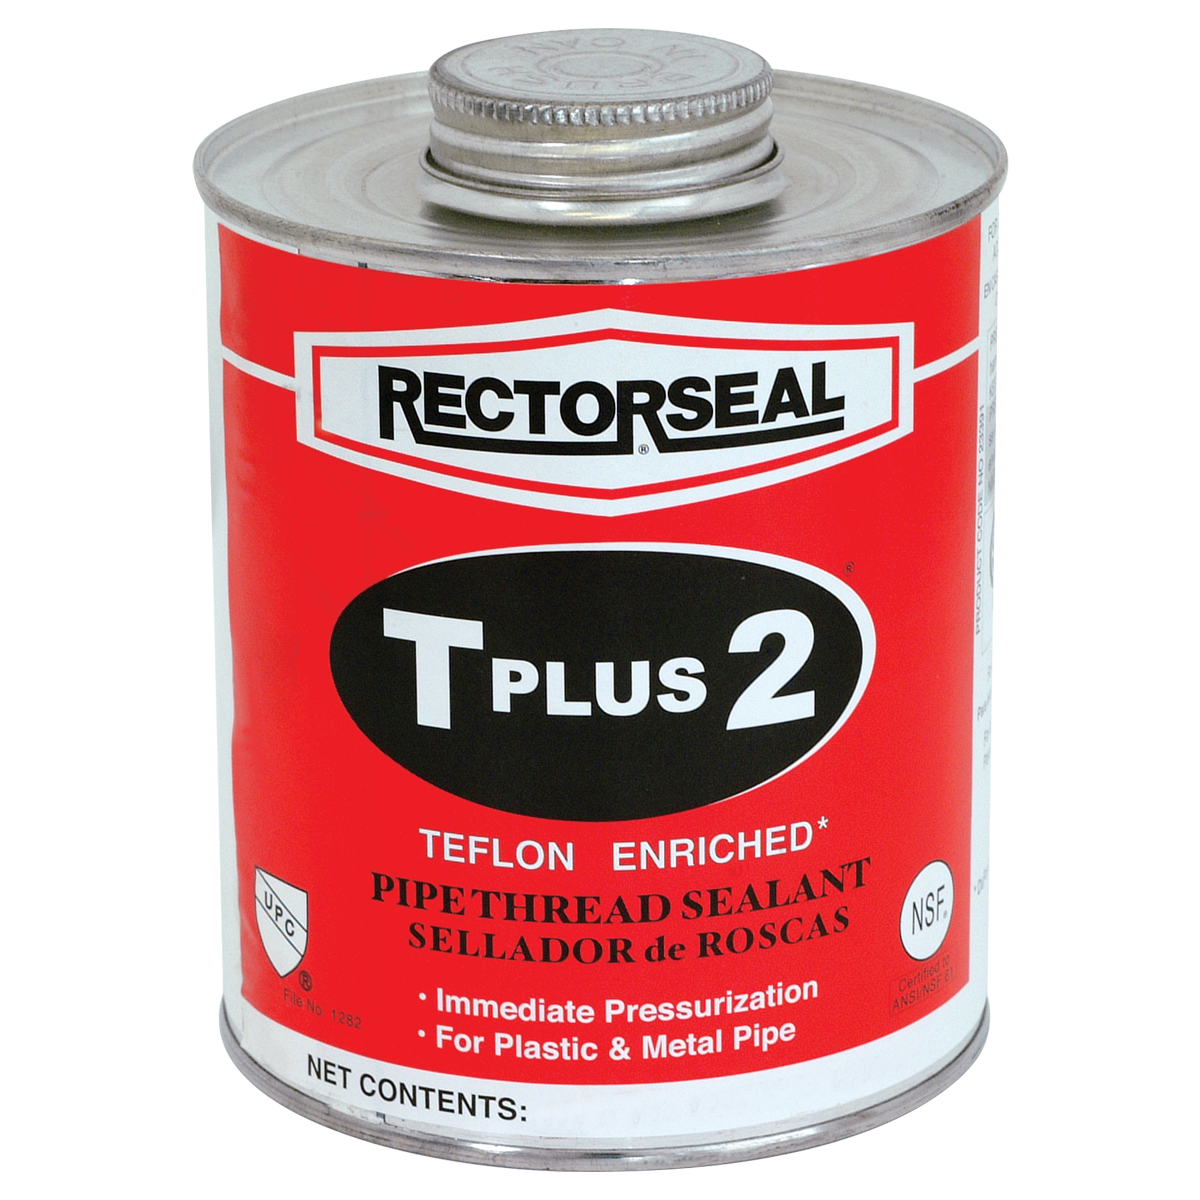 T Plus 2® Telfon Enriched Thread Sealant - 1/4 Pint